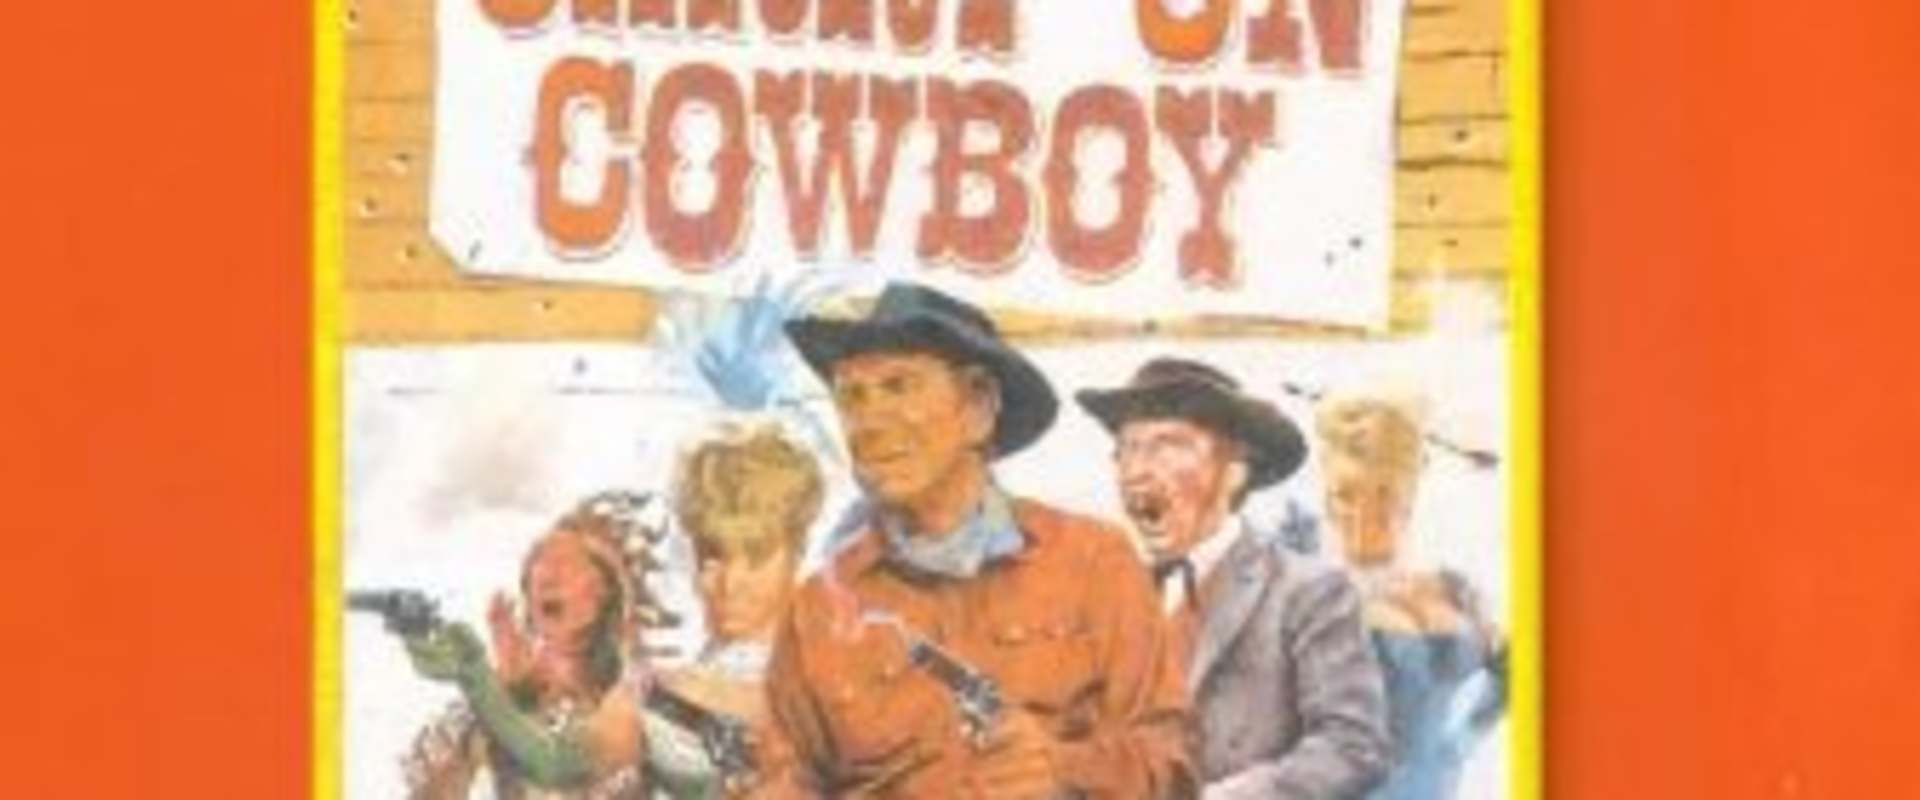 Carry on Cowboy background 2